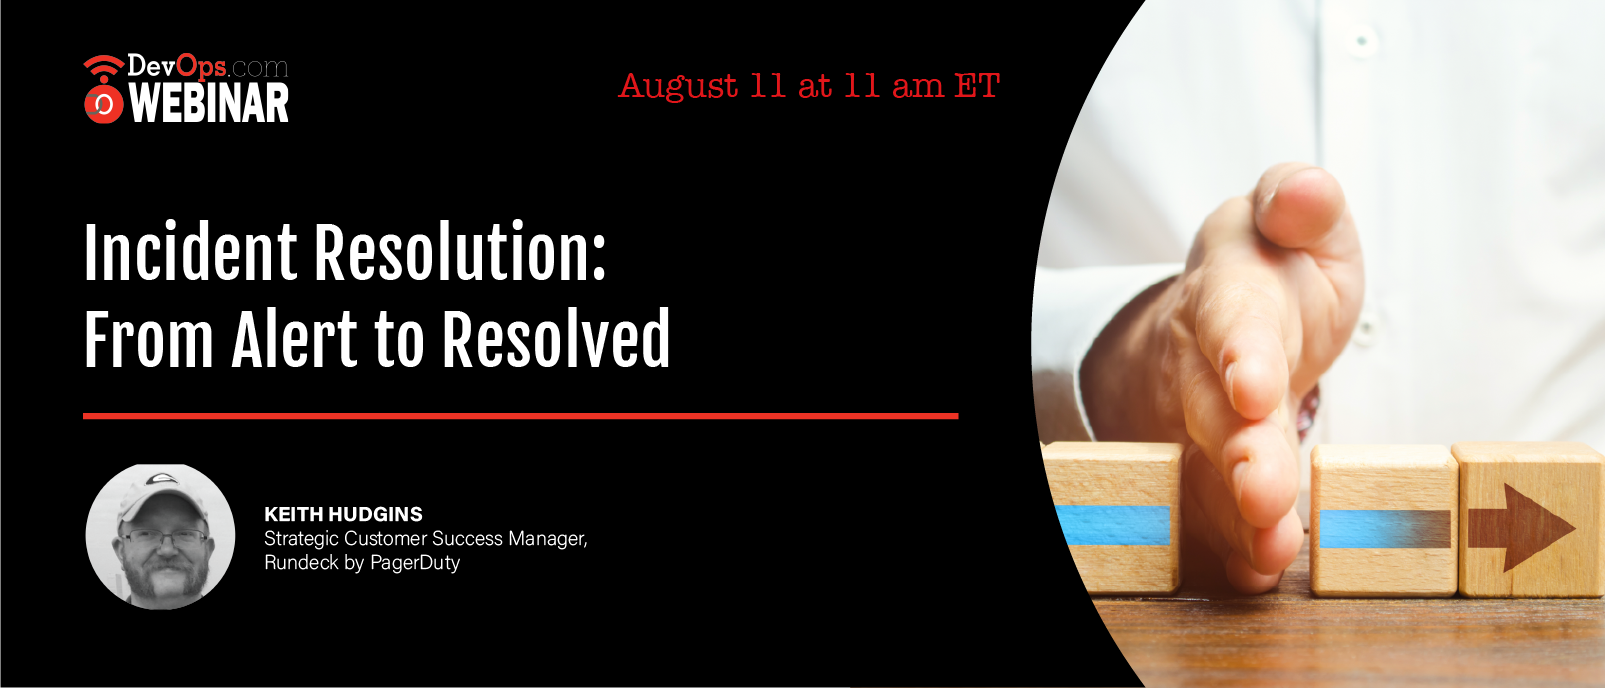 Incident Resolution: From Alert to Resolved